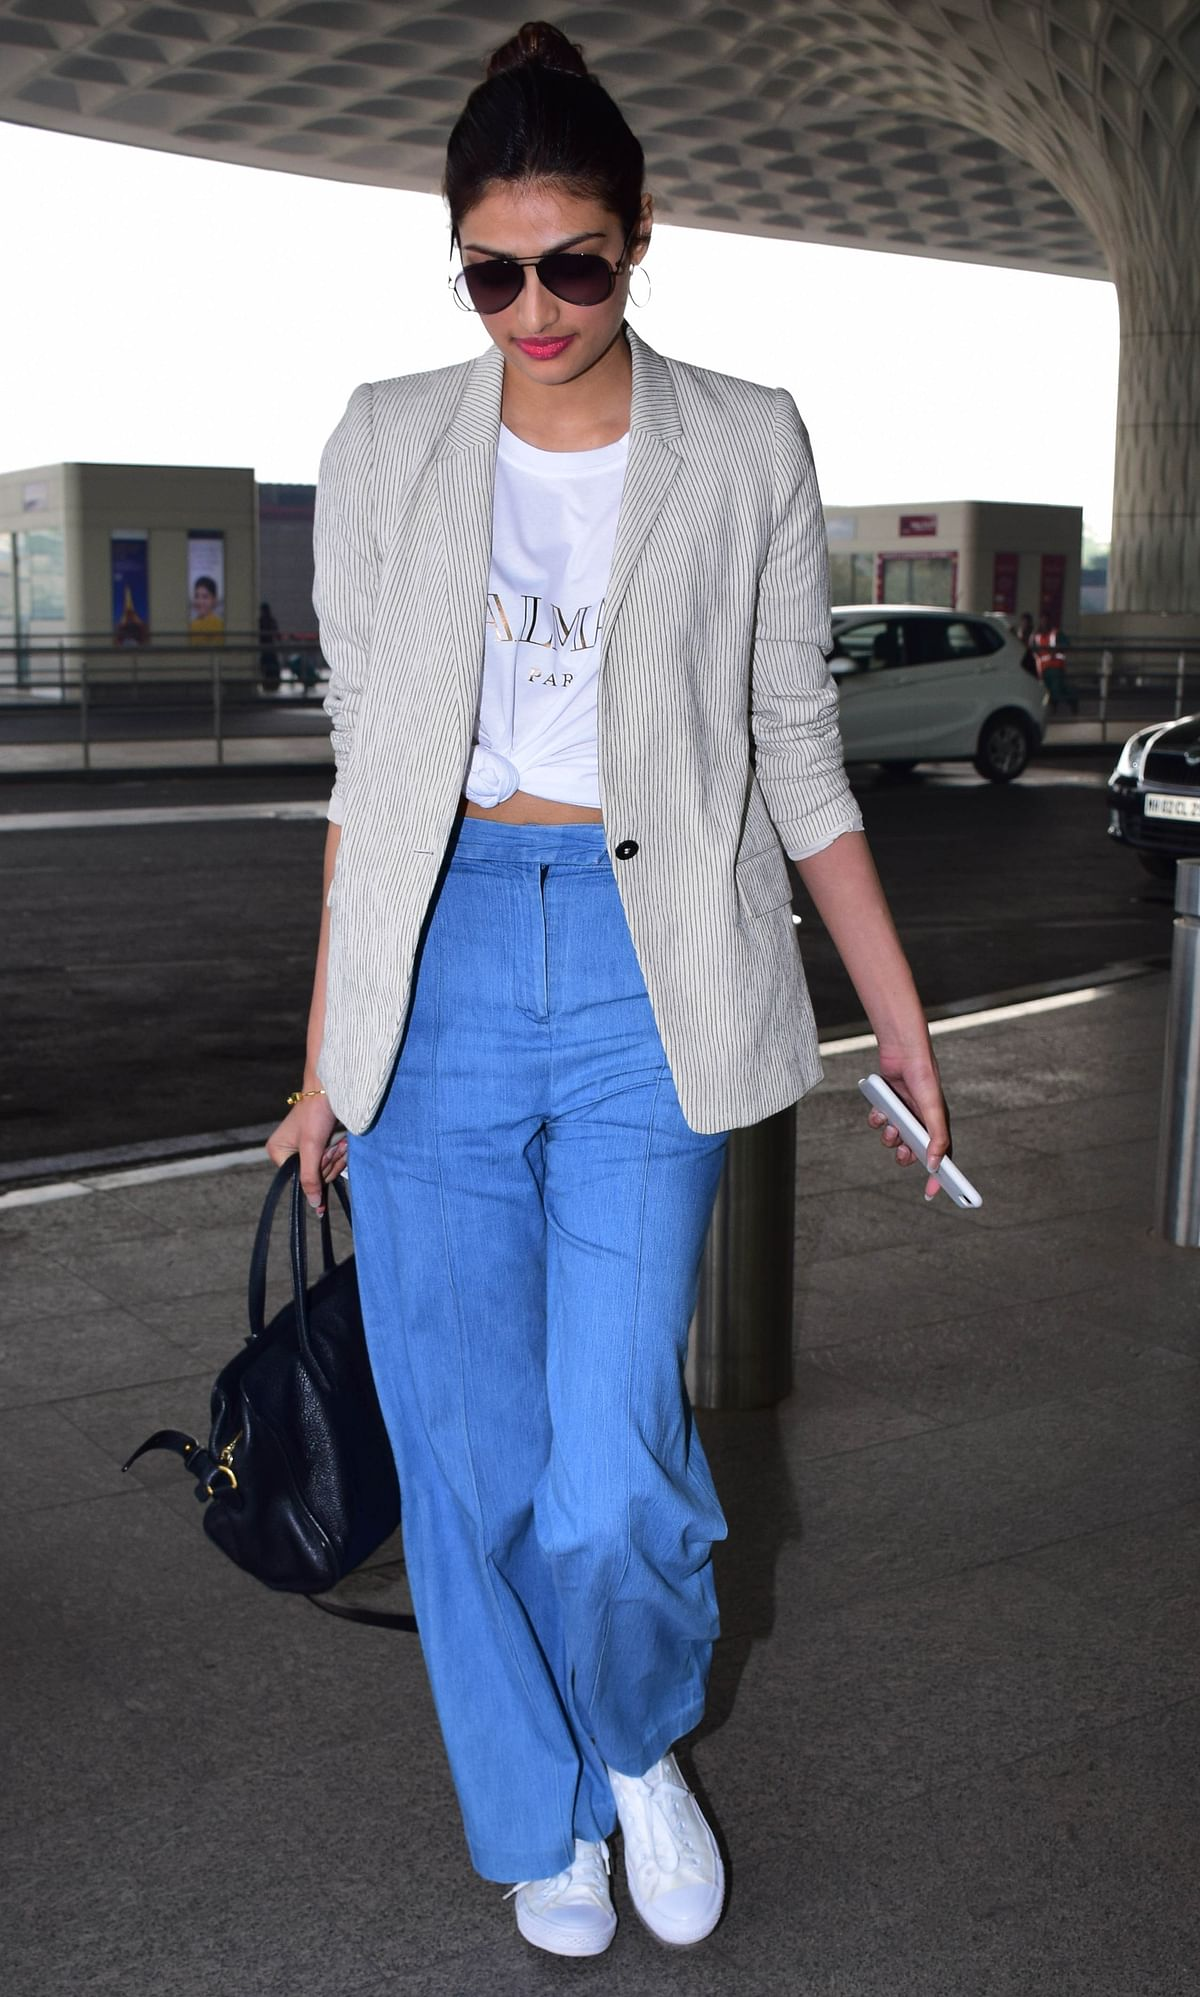 Athiya Shetty in her airport look.